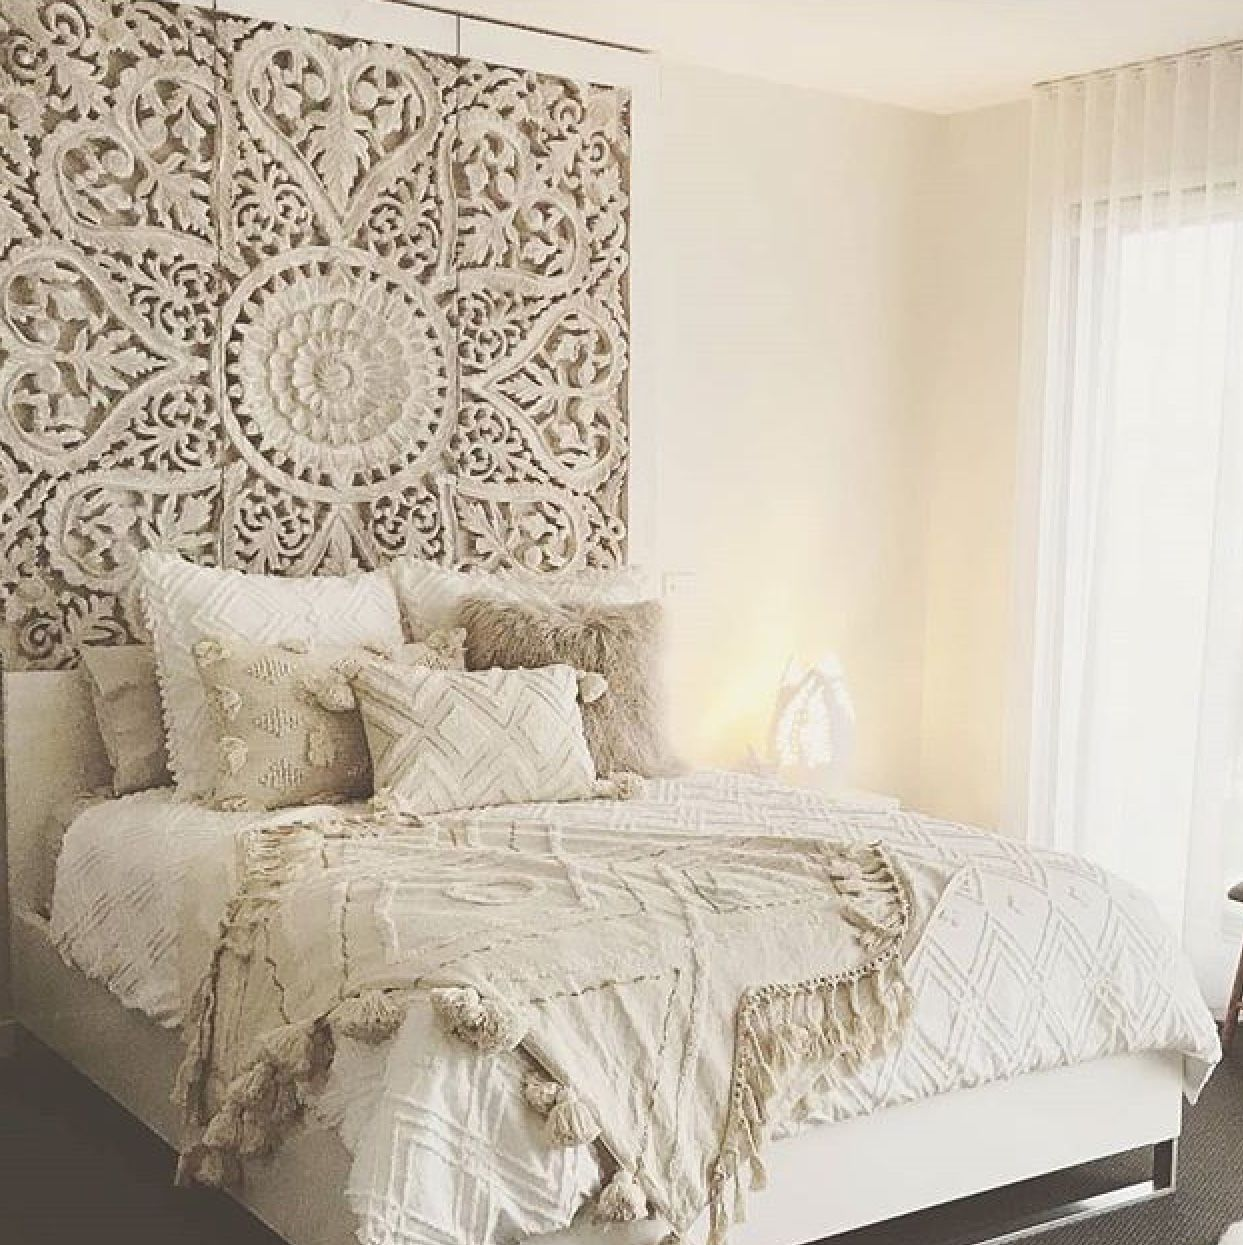 Modern Accent Wall Panel For King Bed: Boho Master Bedroom, Bedroom Decor, White Paneling